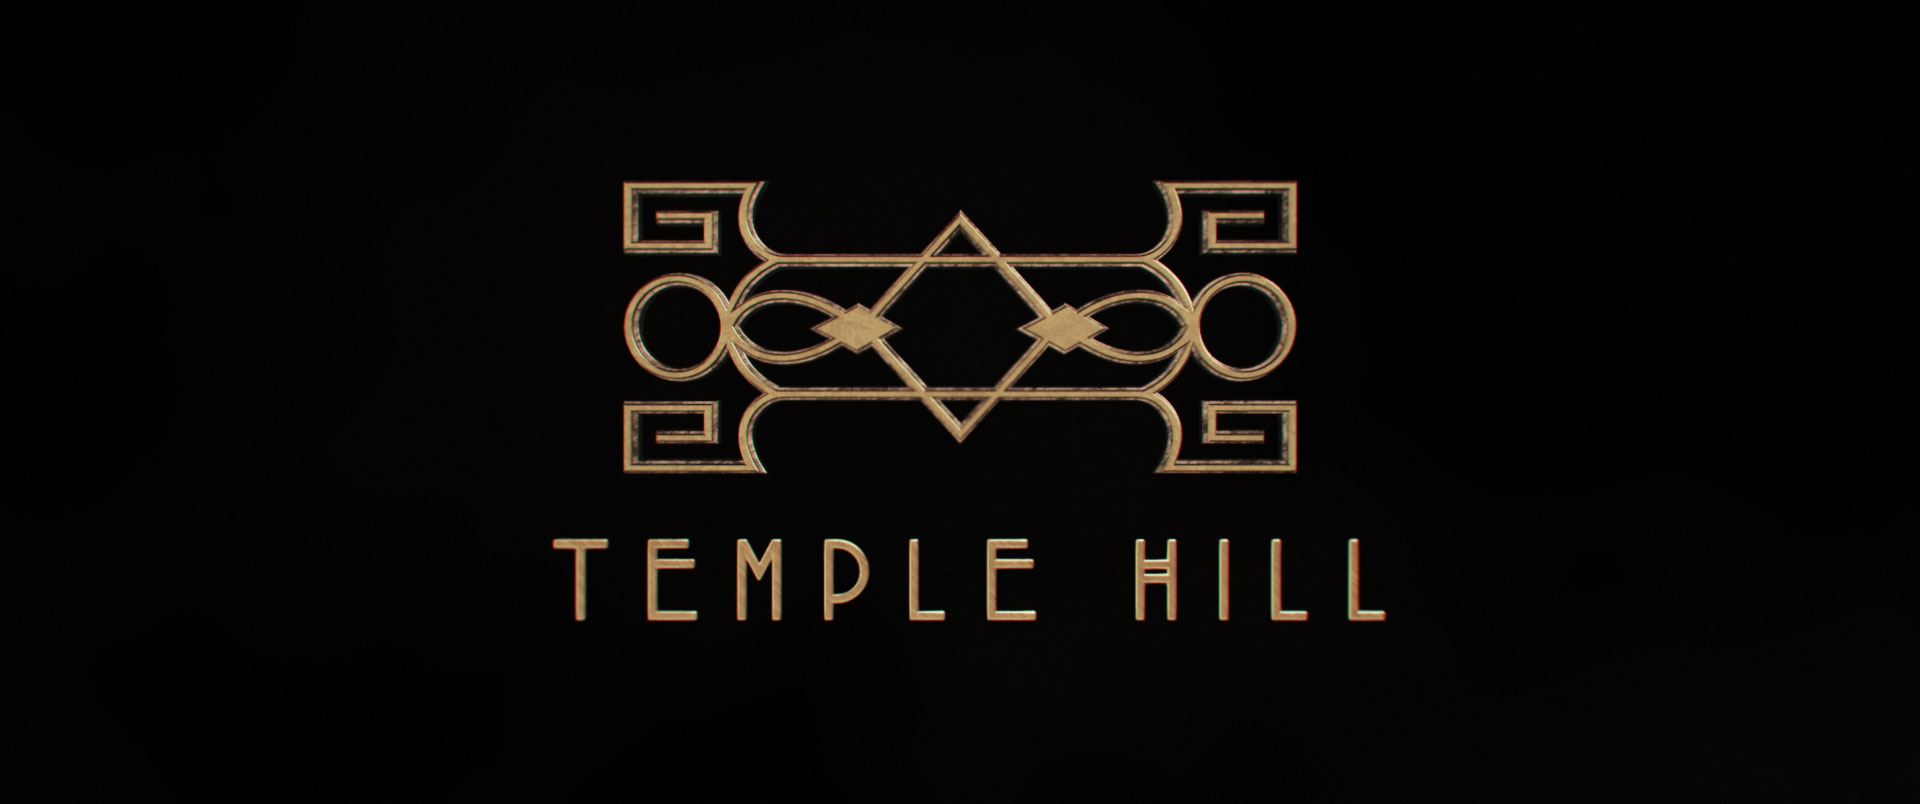 Temple Hill Entertainment logo